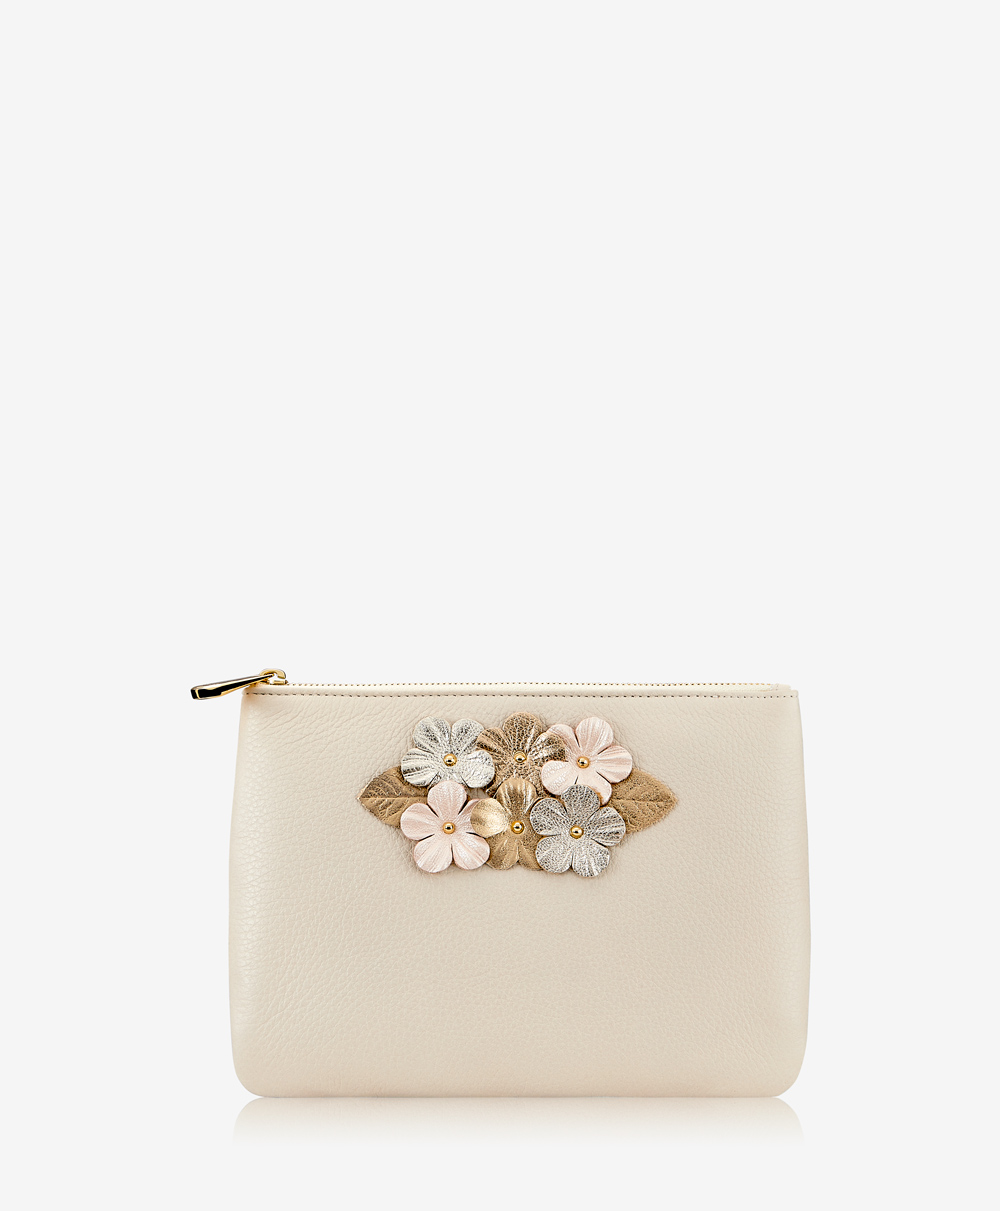 Elie Floral Applique Clutch Ivory Napa Luxe OBA-GIF2-LUX-IVY